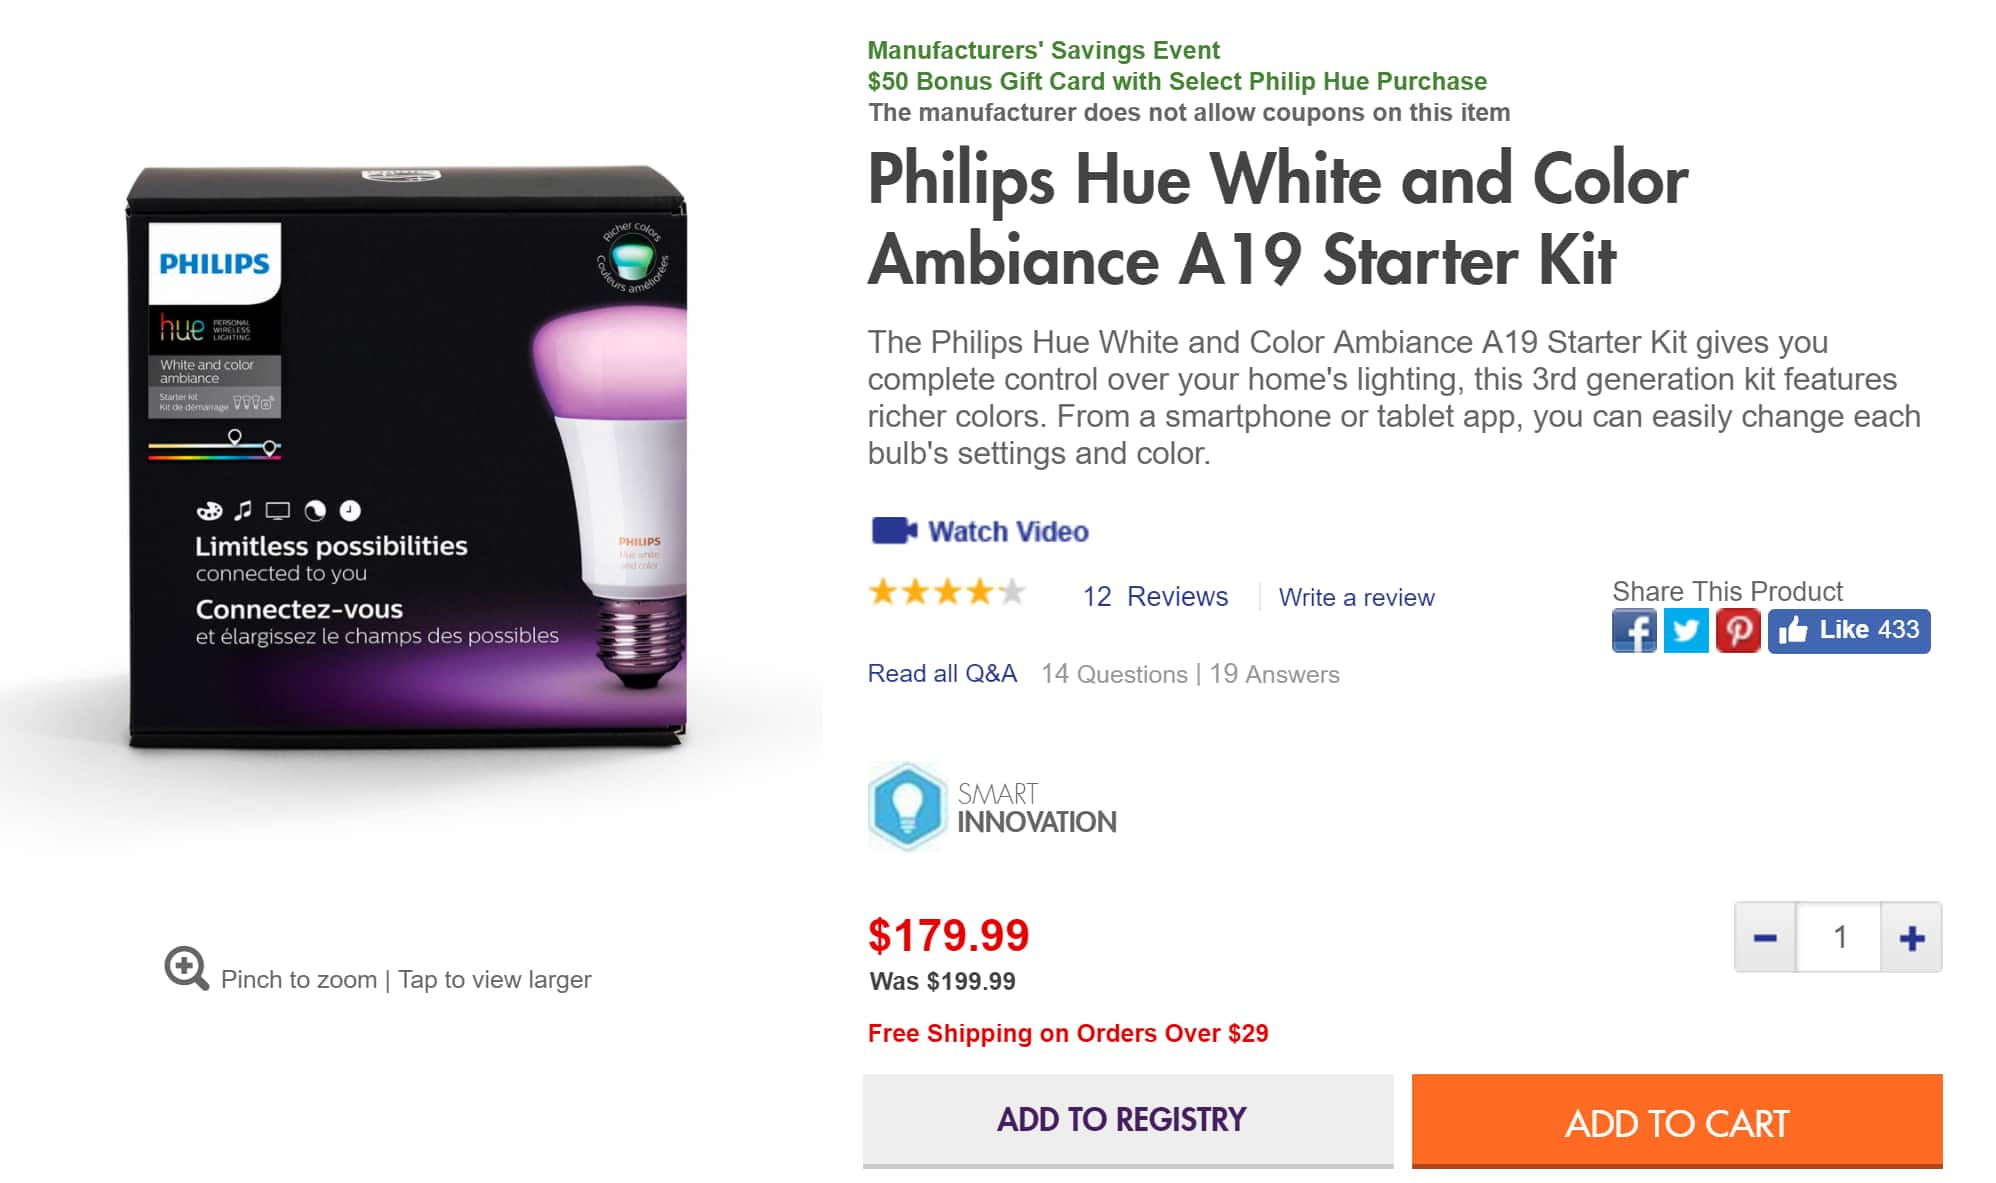 Bed Bath and Beyond Philips Hue White and Color Ambiance A